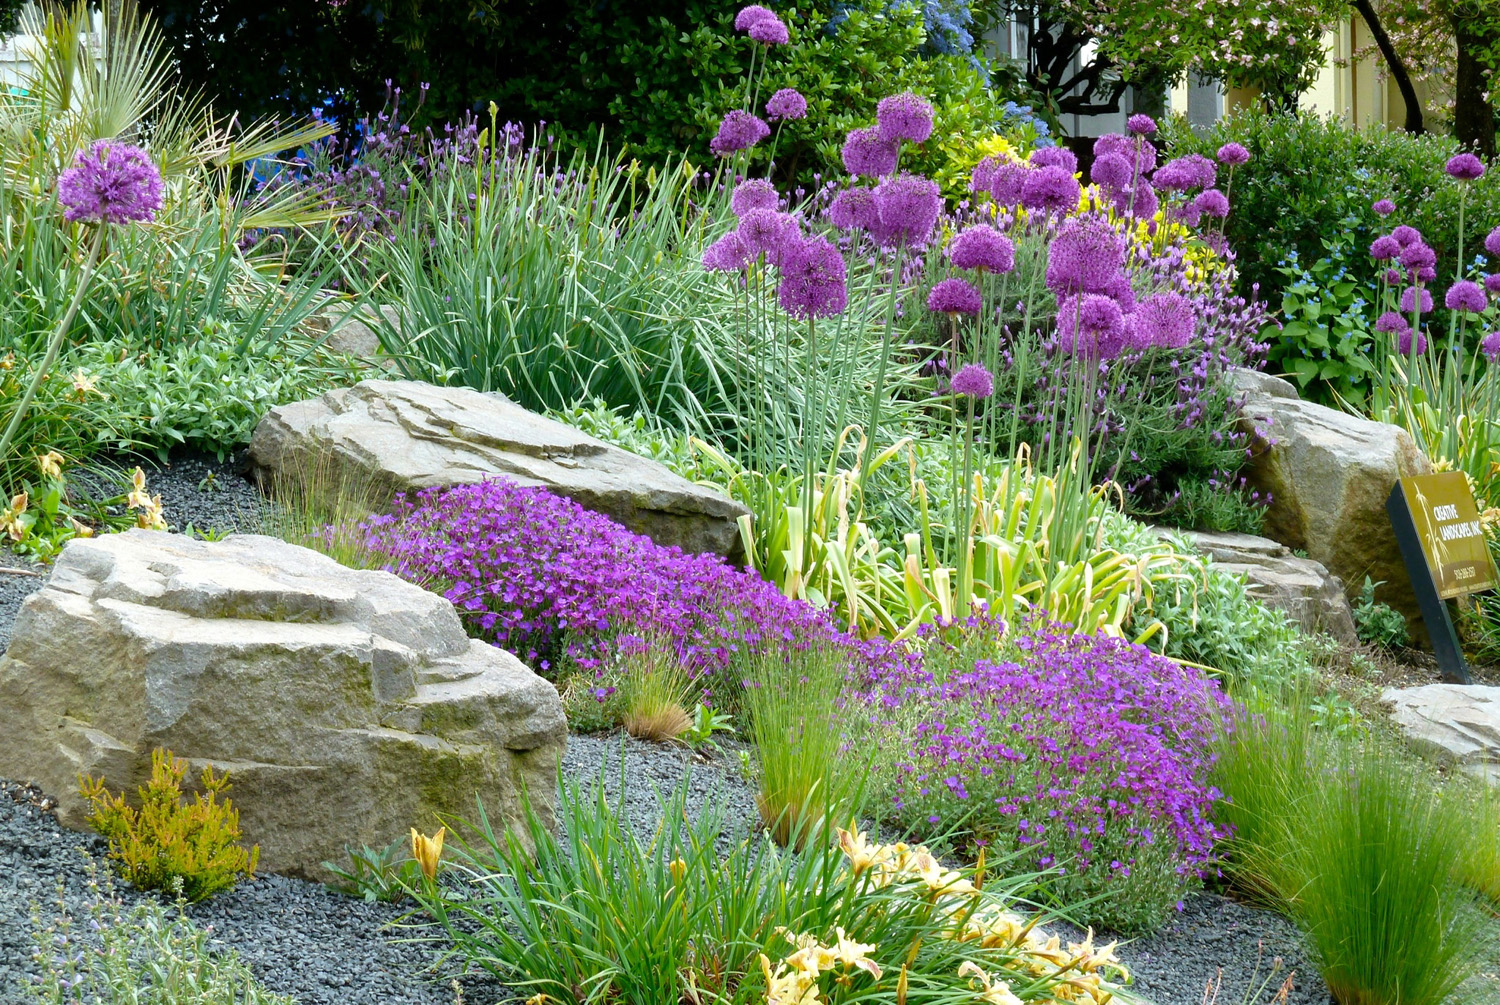 Rock Gardens Featured Image